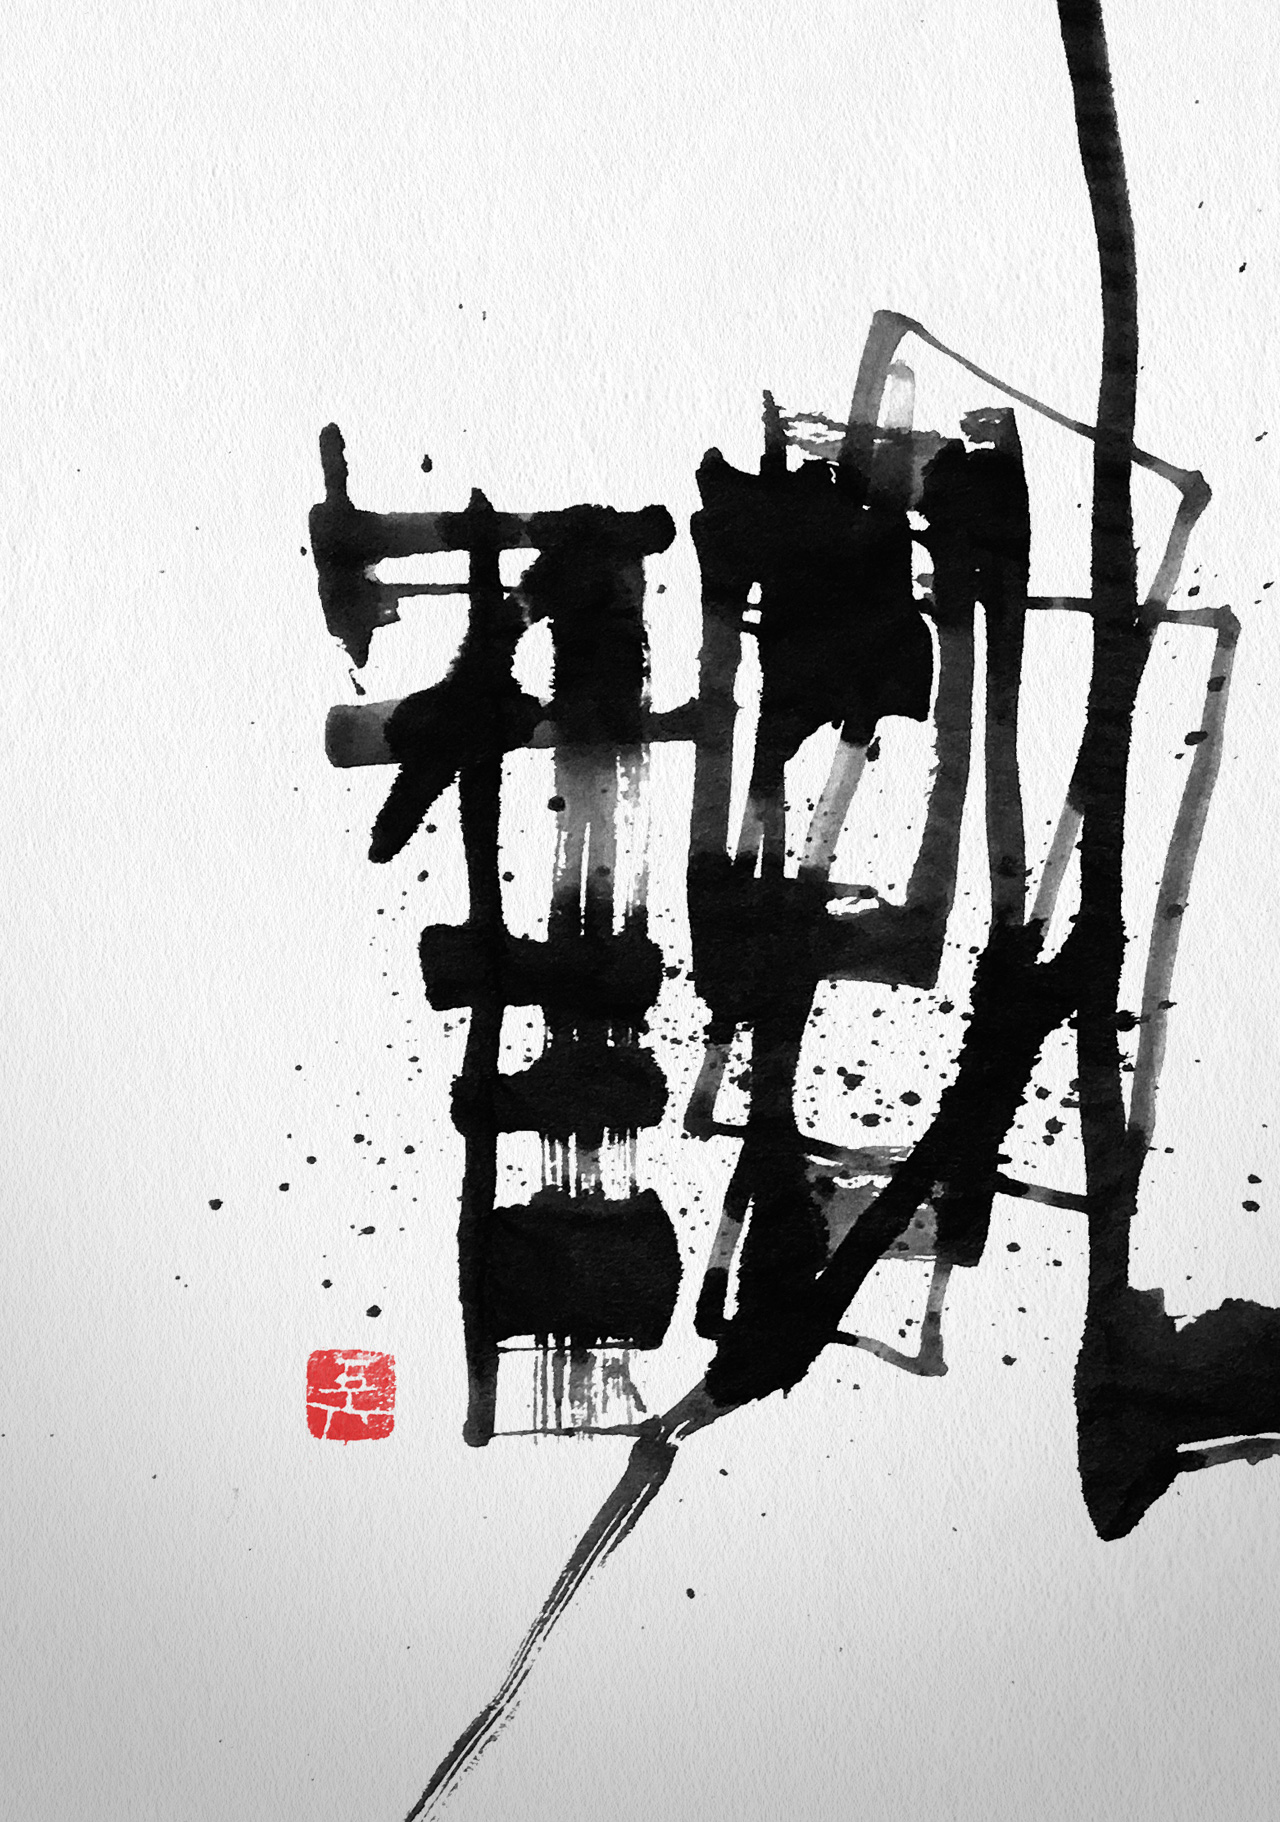 観 perspective 書道作品 japaneseart japanesecalligraphy